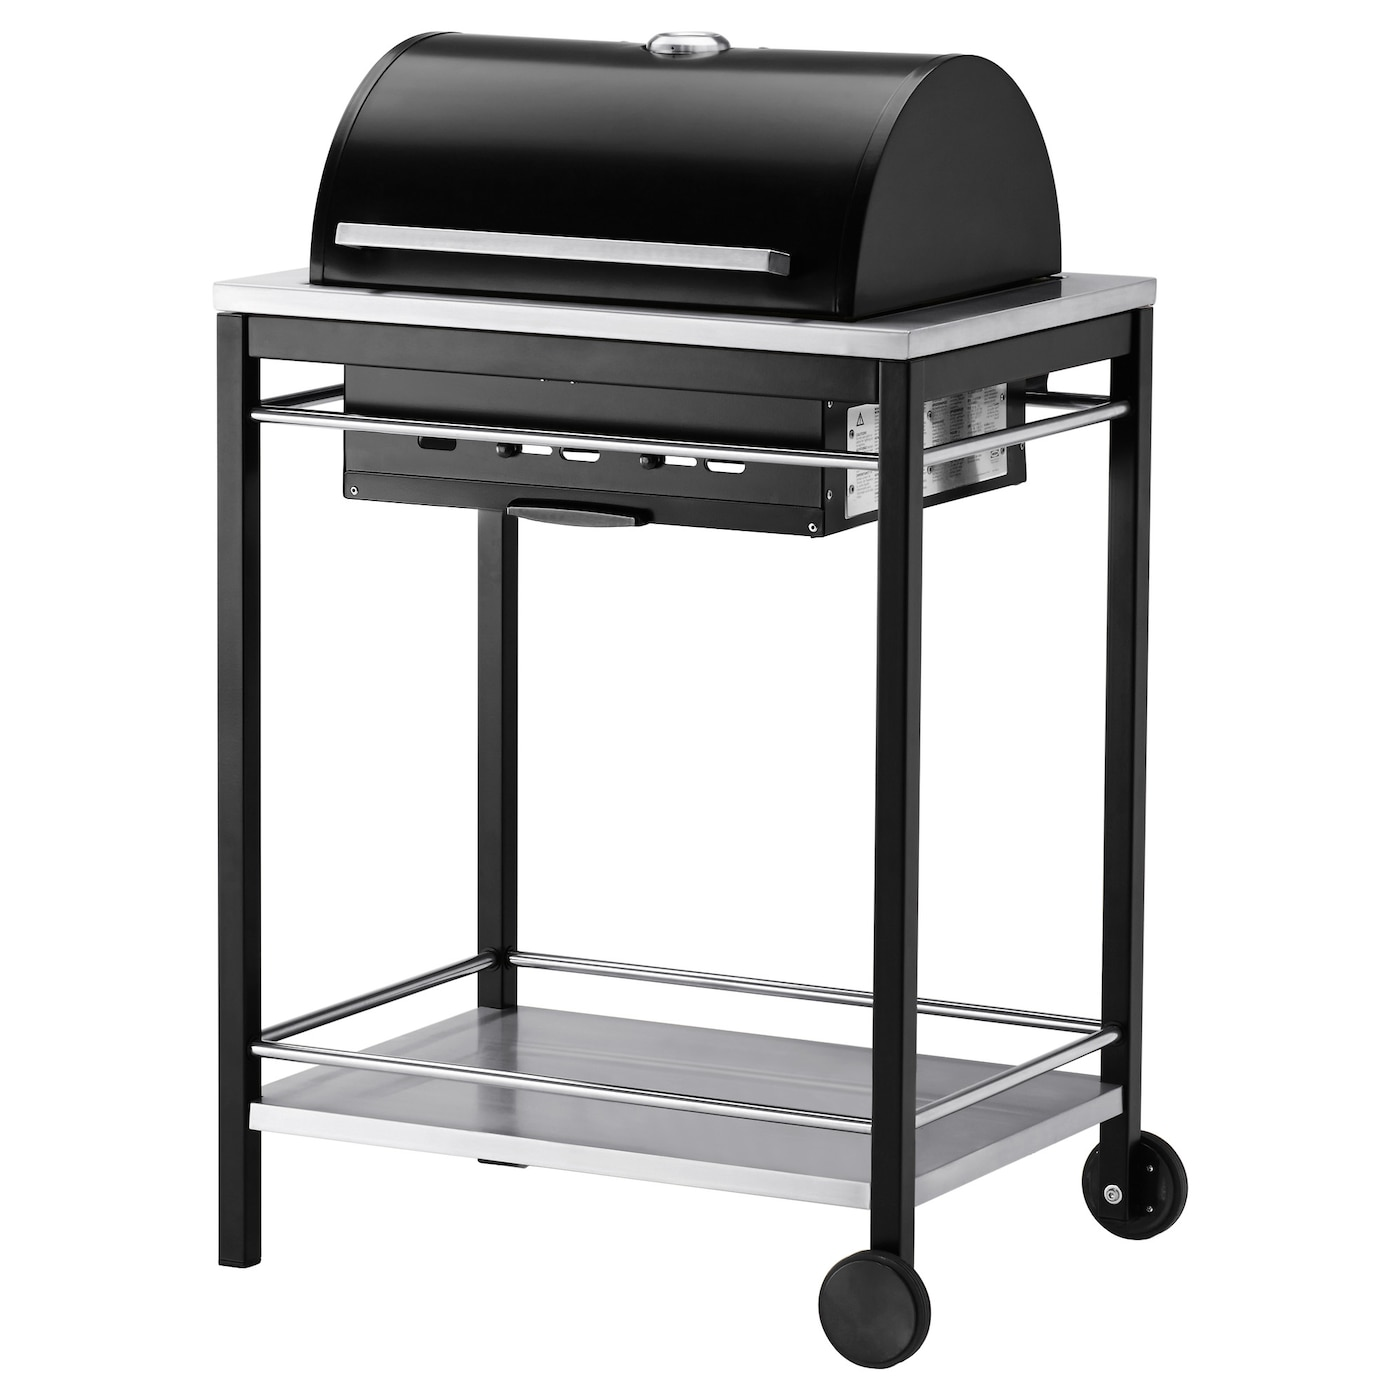 IKEA KLASEN charcoal barbecue Heat-insulated handles in stainless steel.